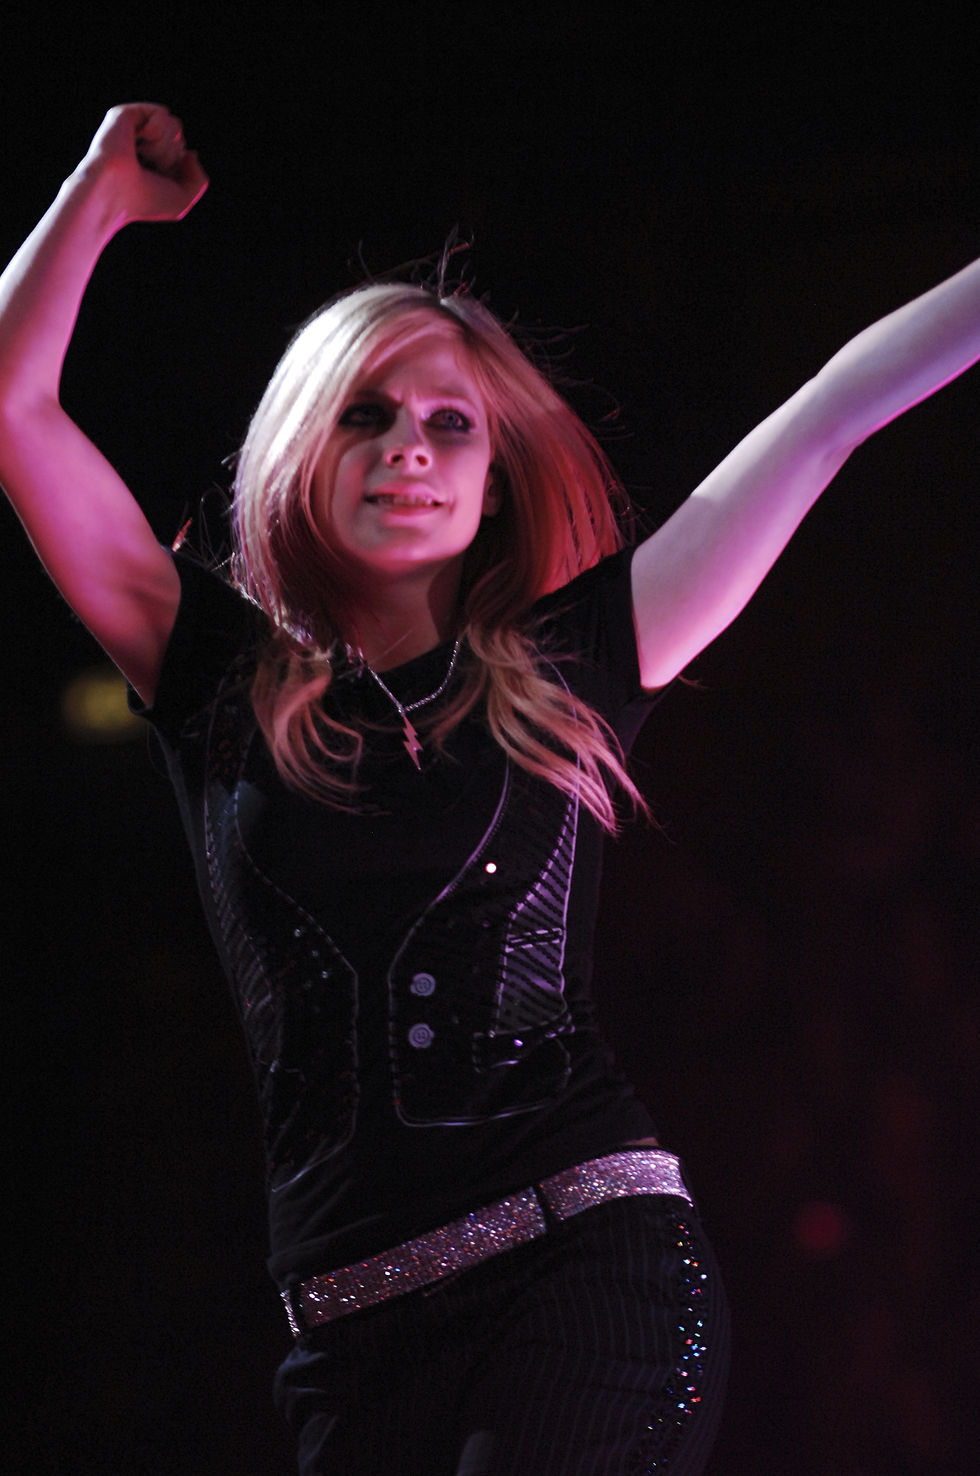 avril-lavigne-the-best-dawn-tour-performance-in-milan-02